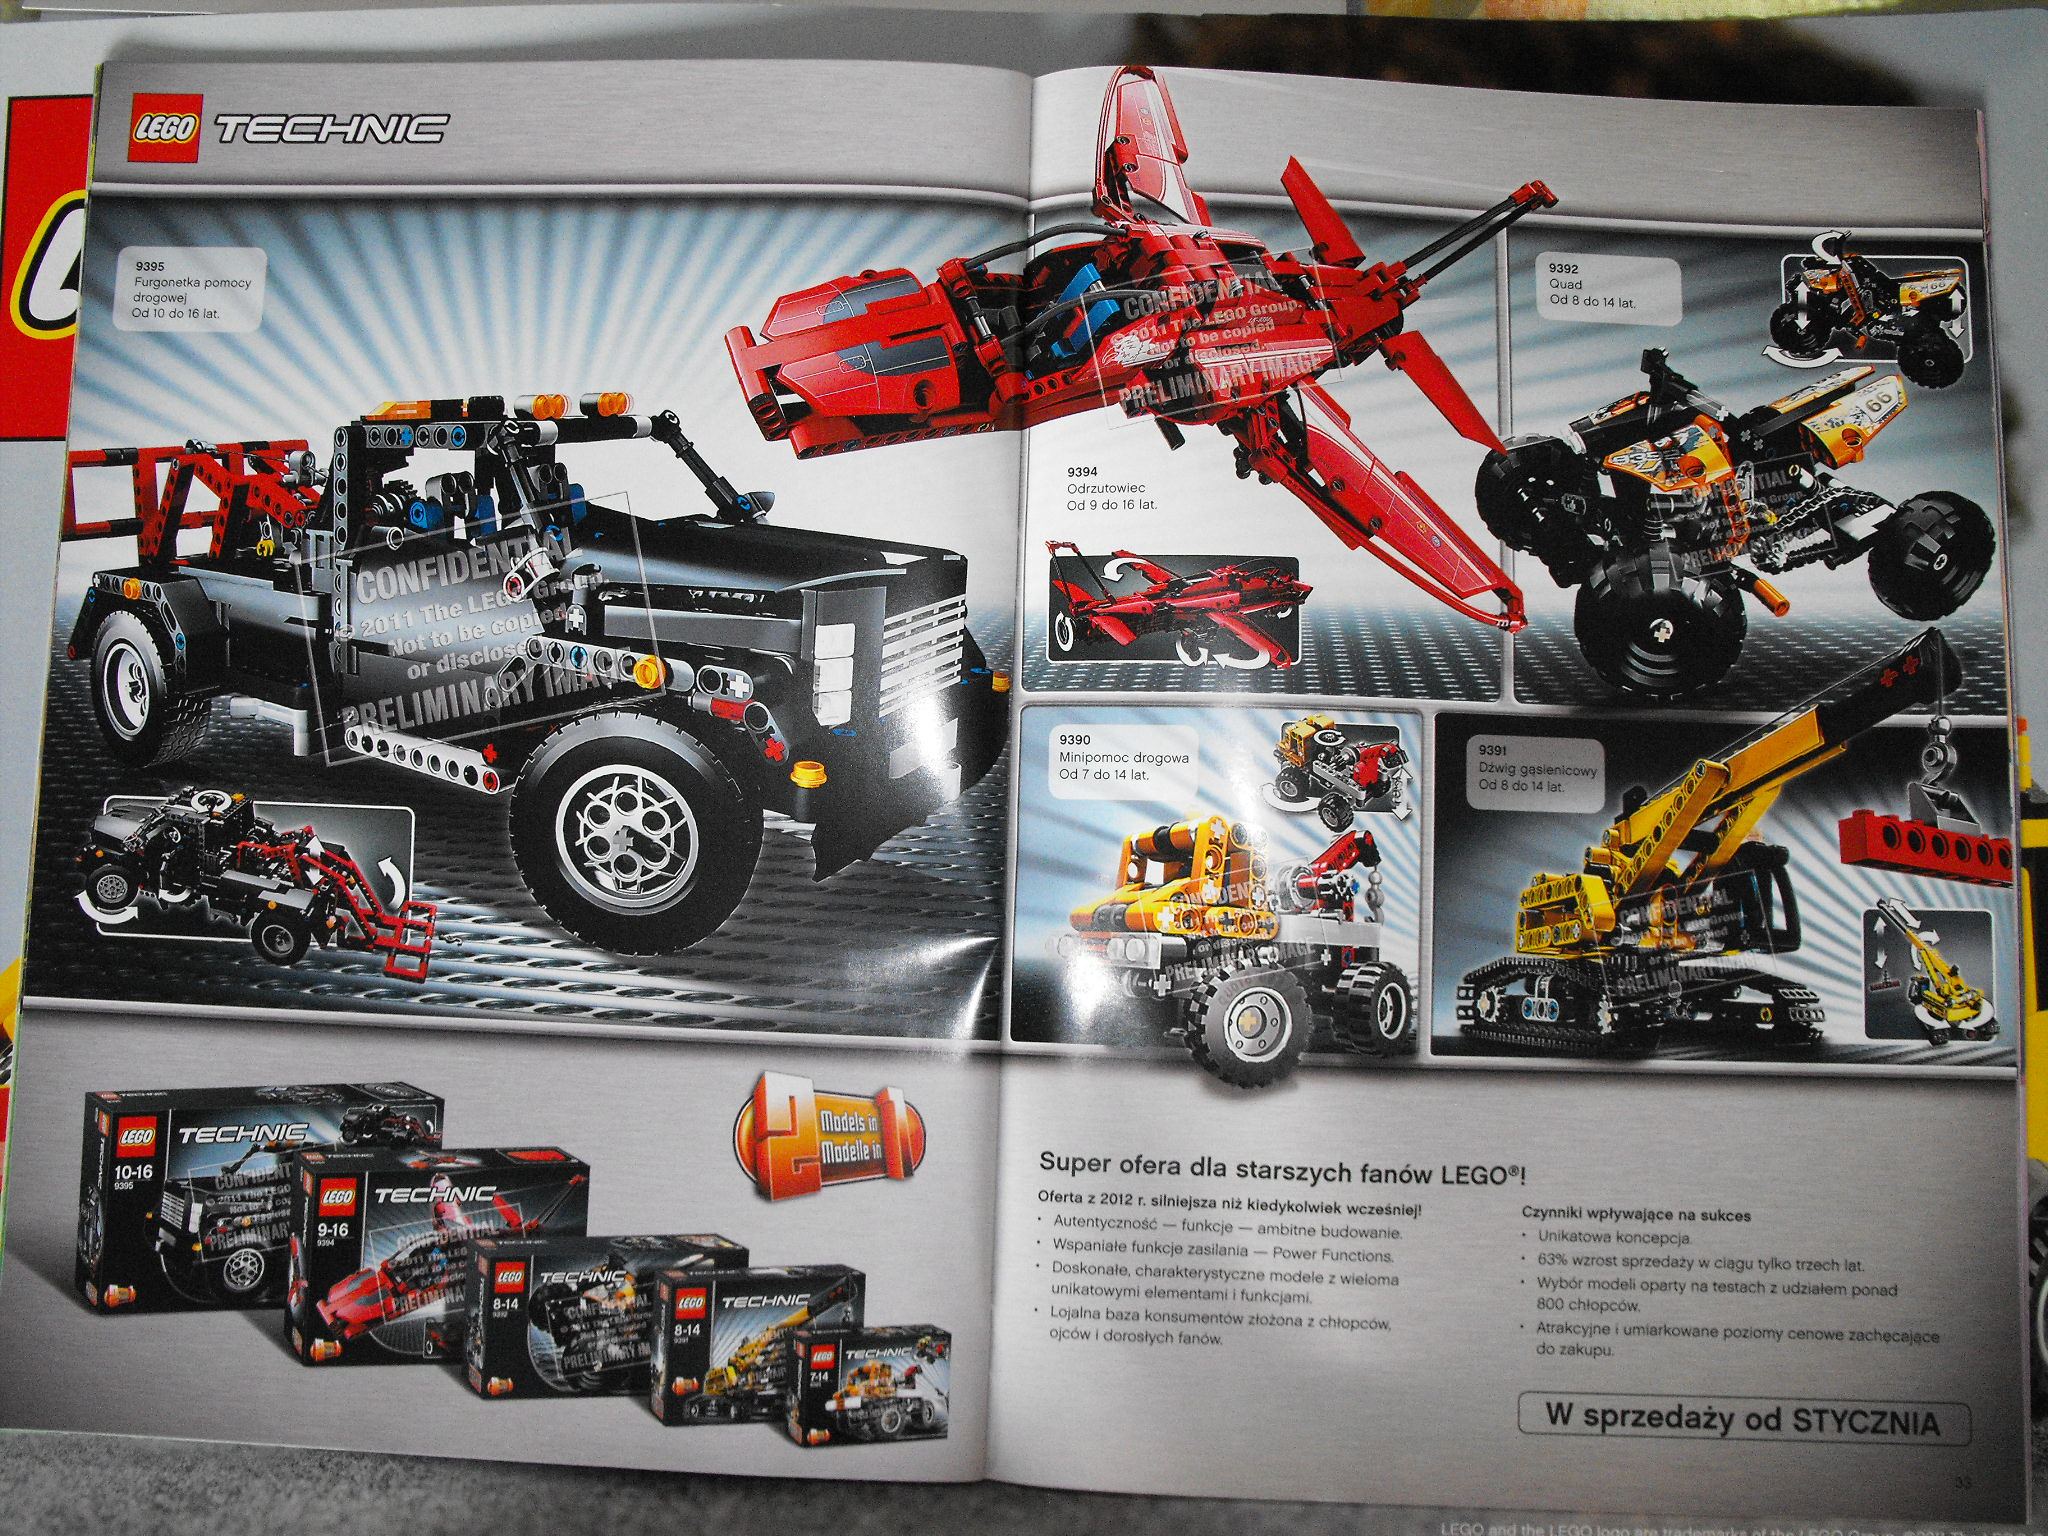 Lego Technic Sets 2012 *Official Pics* - YouTube